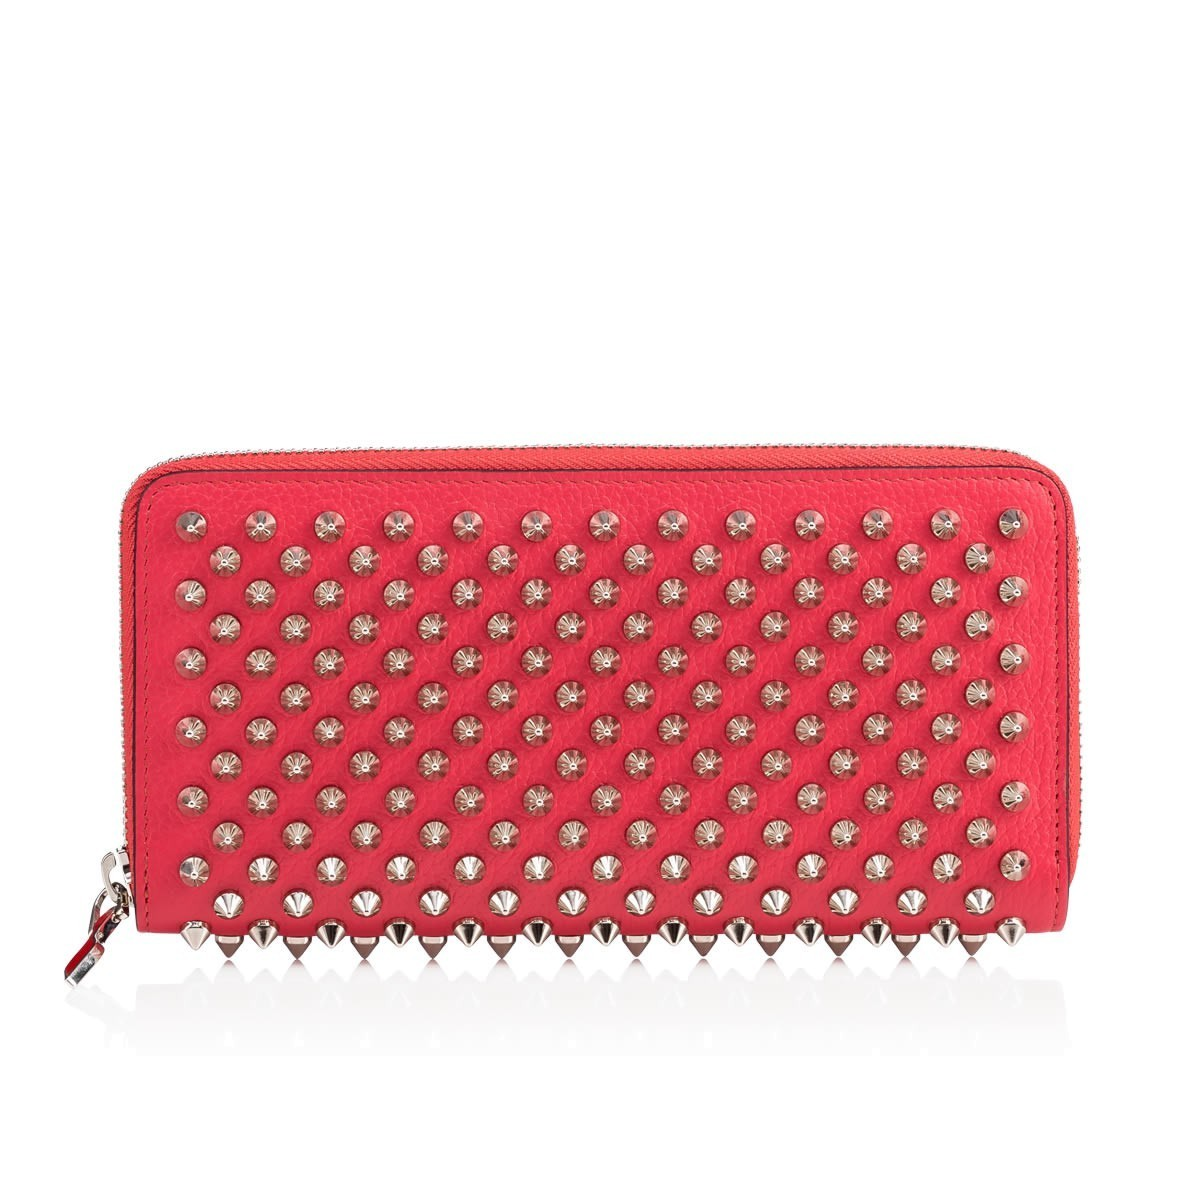 shop christian louboutin wallets & card holders